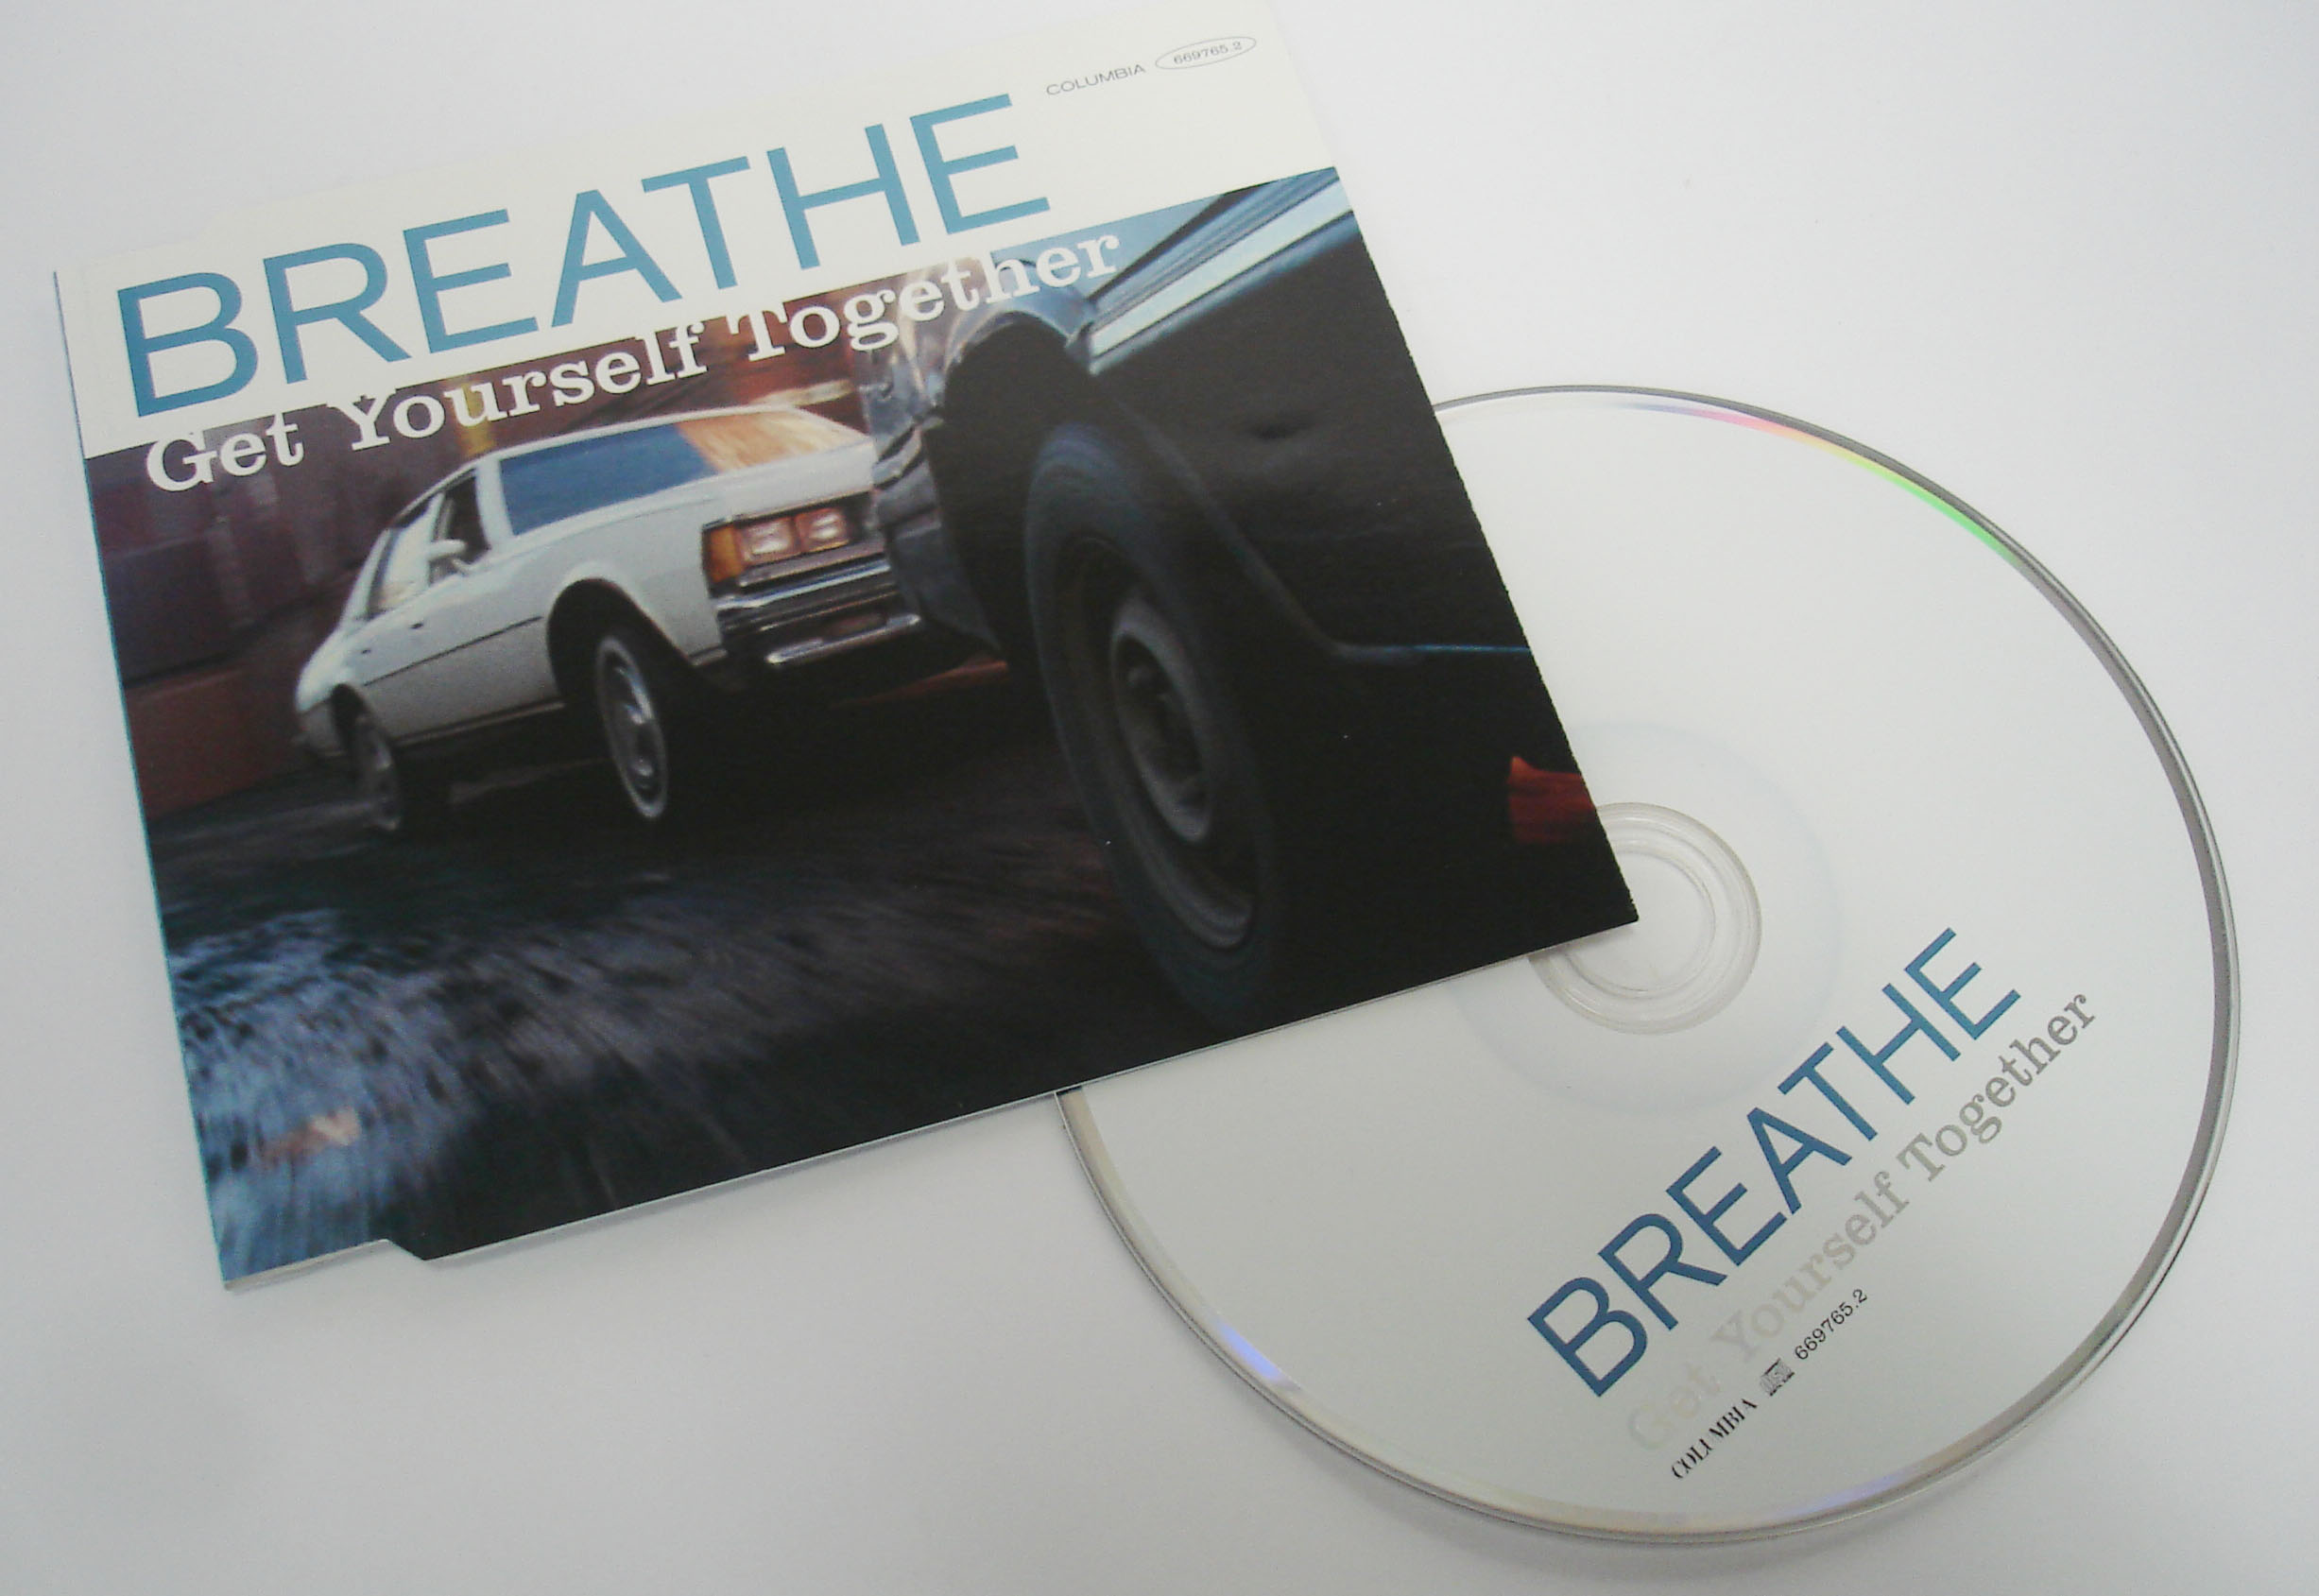 BREATHE - GET YOURSELF TOGETHER - SINGLE